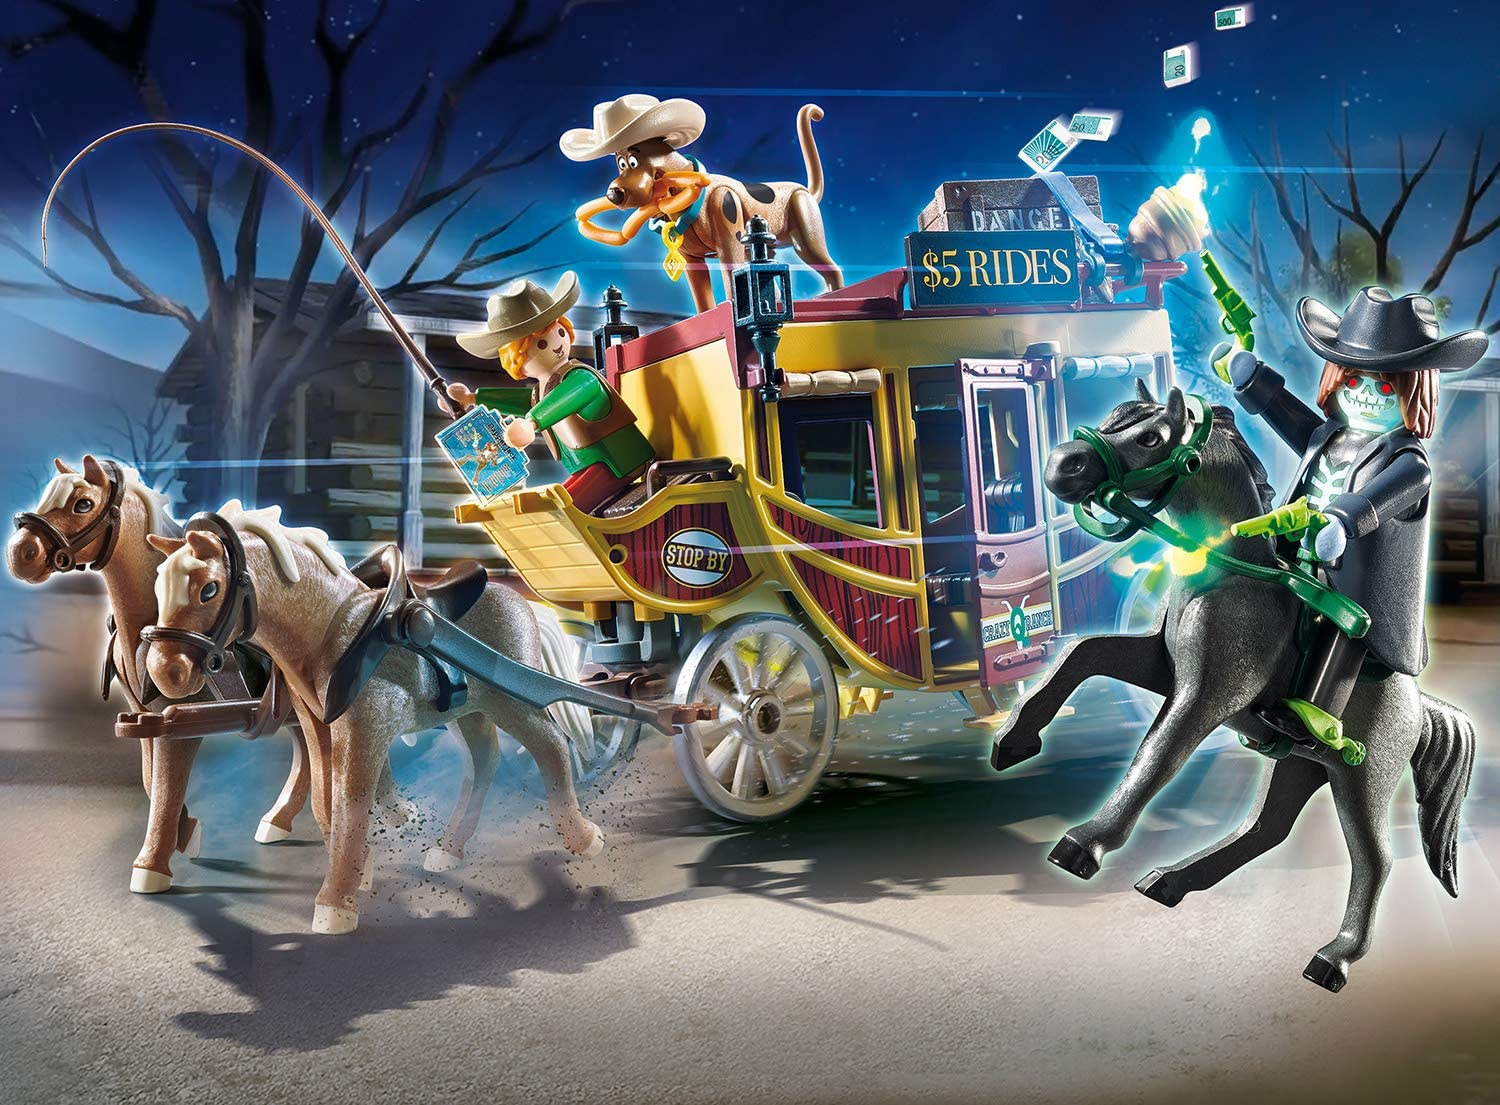 PLAYMOBIL Scooby-DOO! Adventure in The Wild West Playset